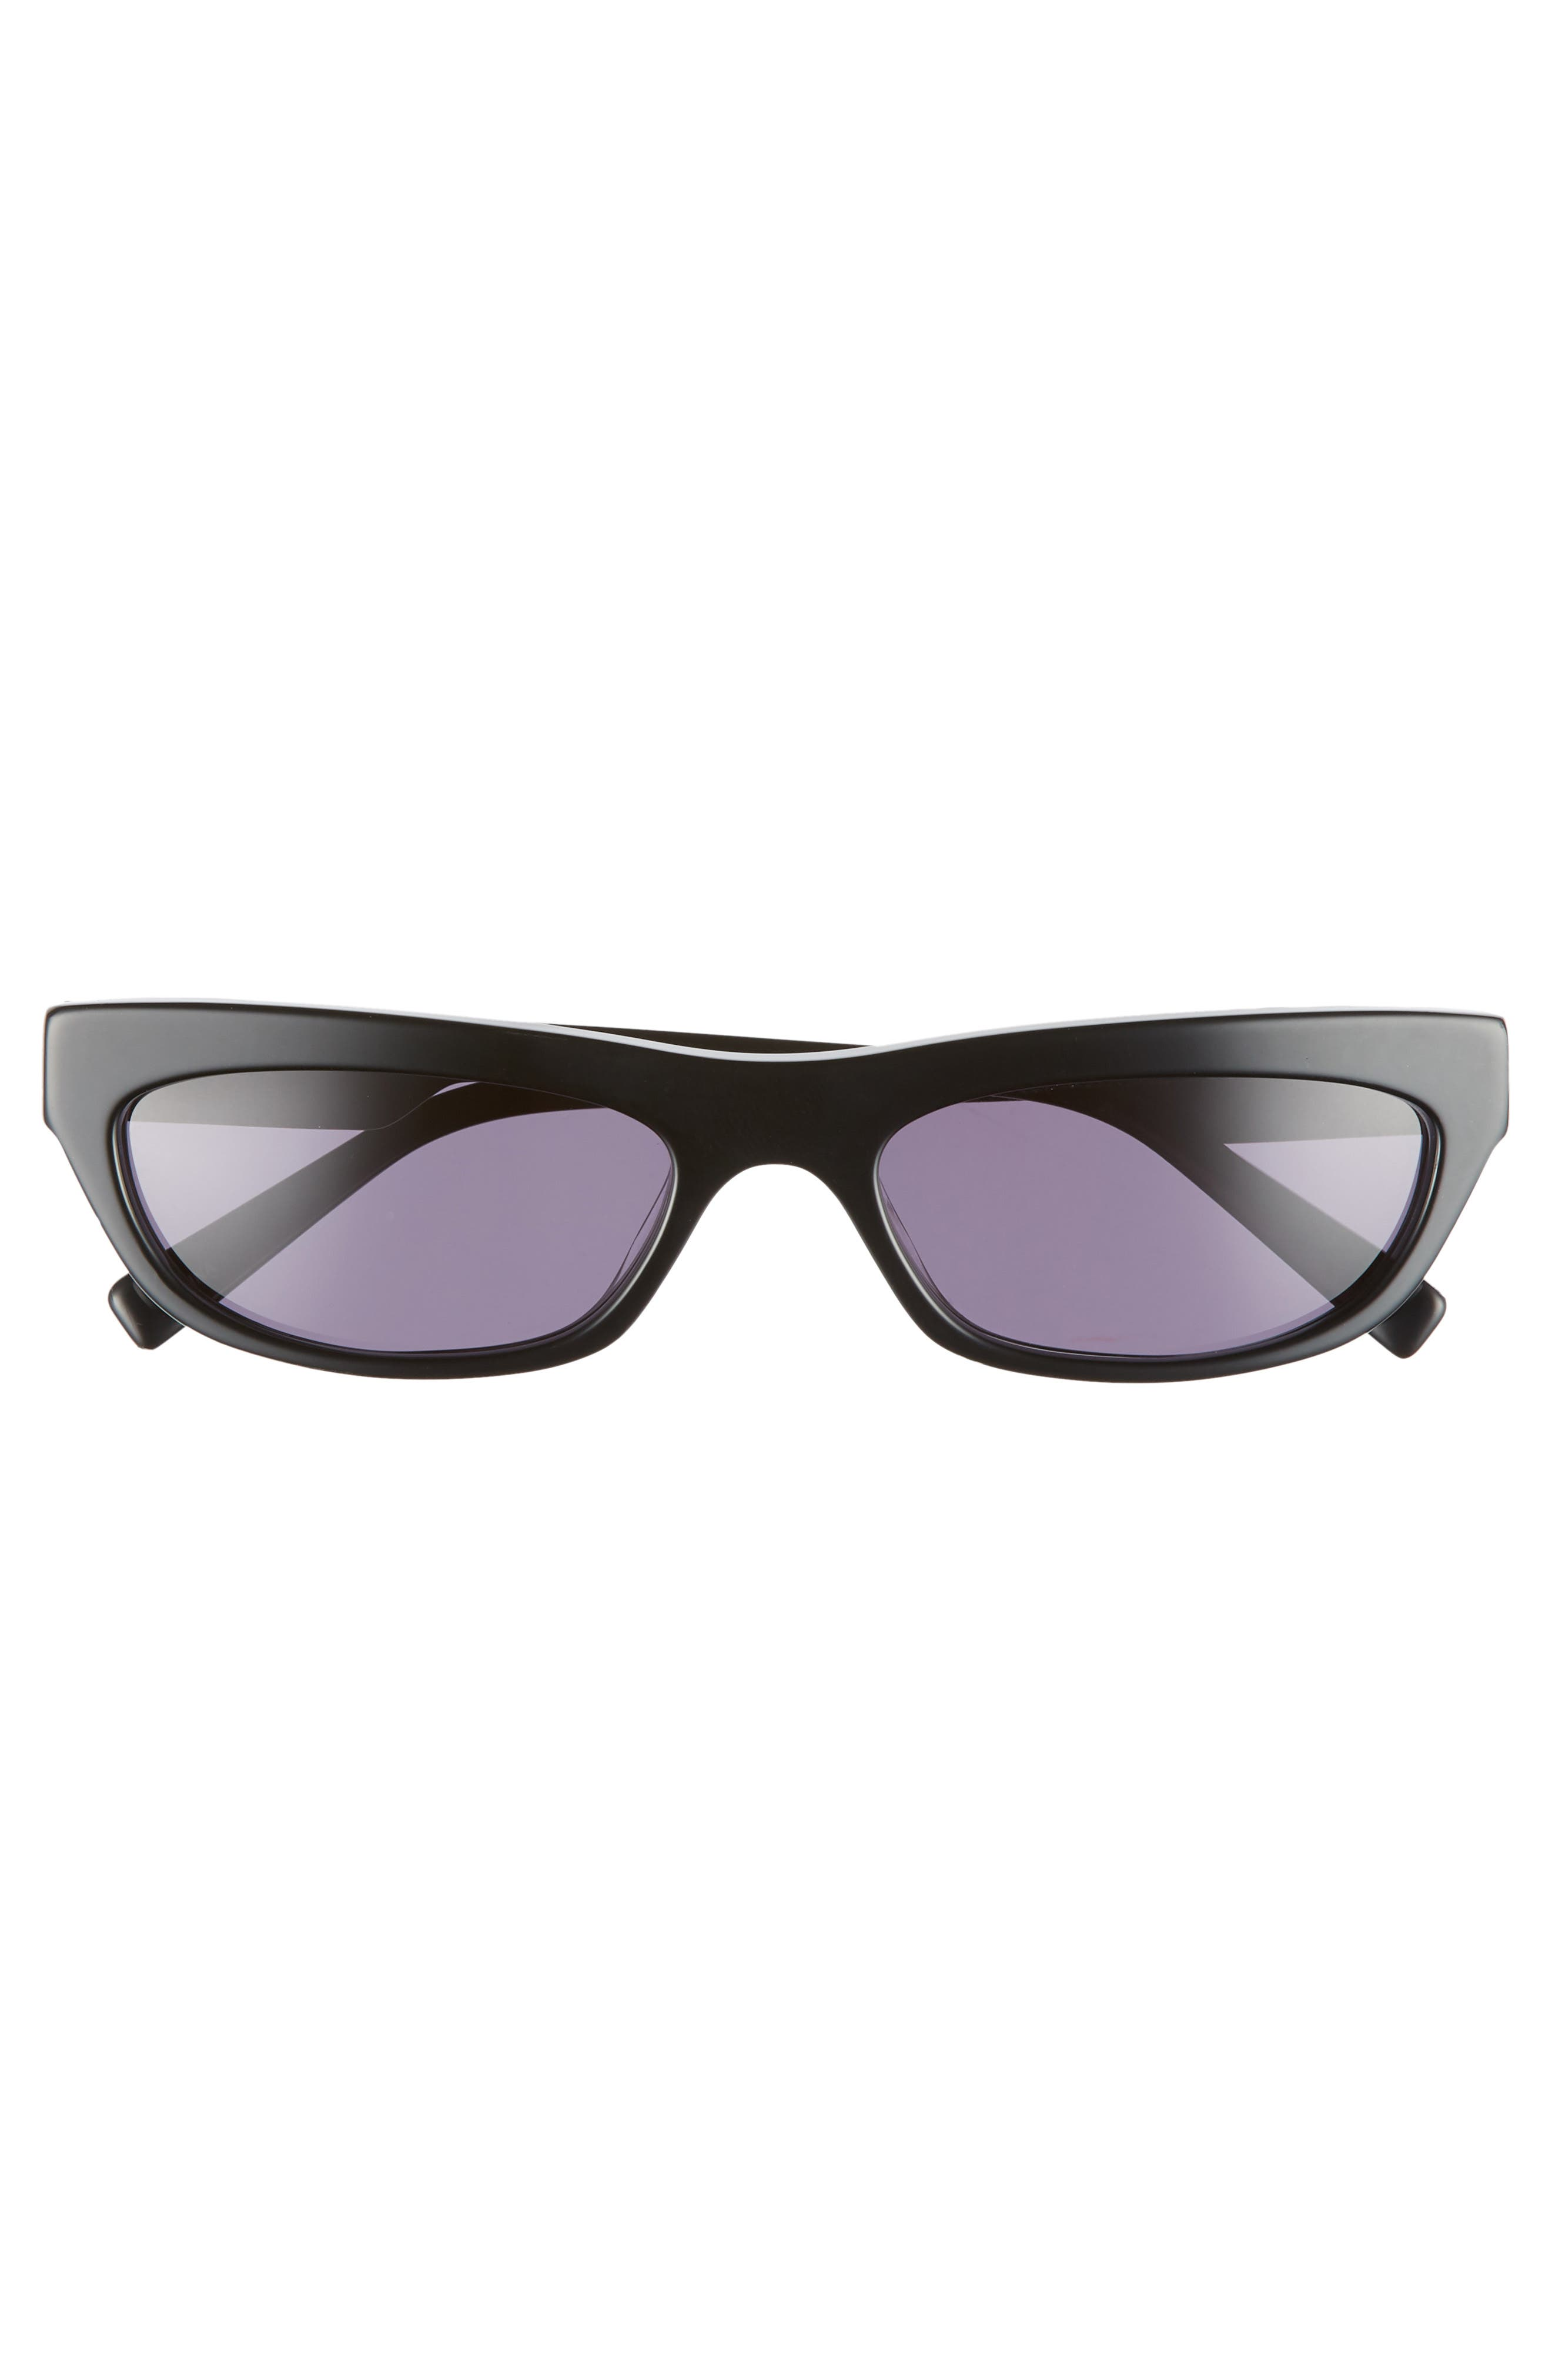 Courtney 55mm Cat Eye Sunglasses,                             Alternate thumbnail 3, color,                             Black/ Solid Smoke